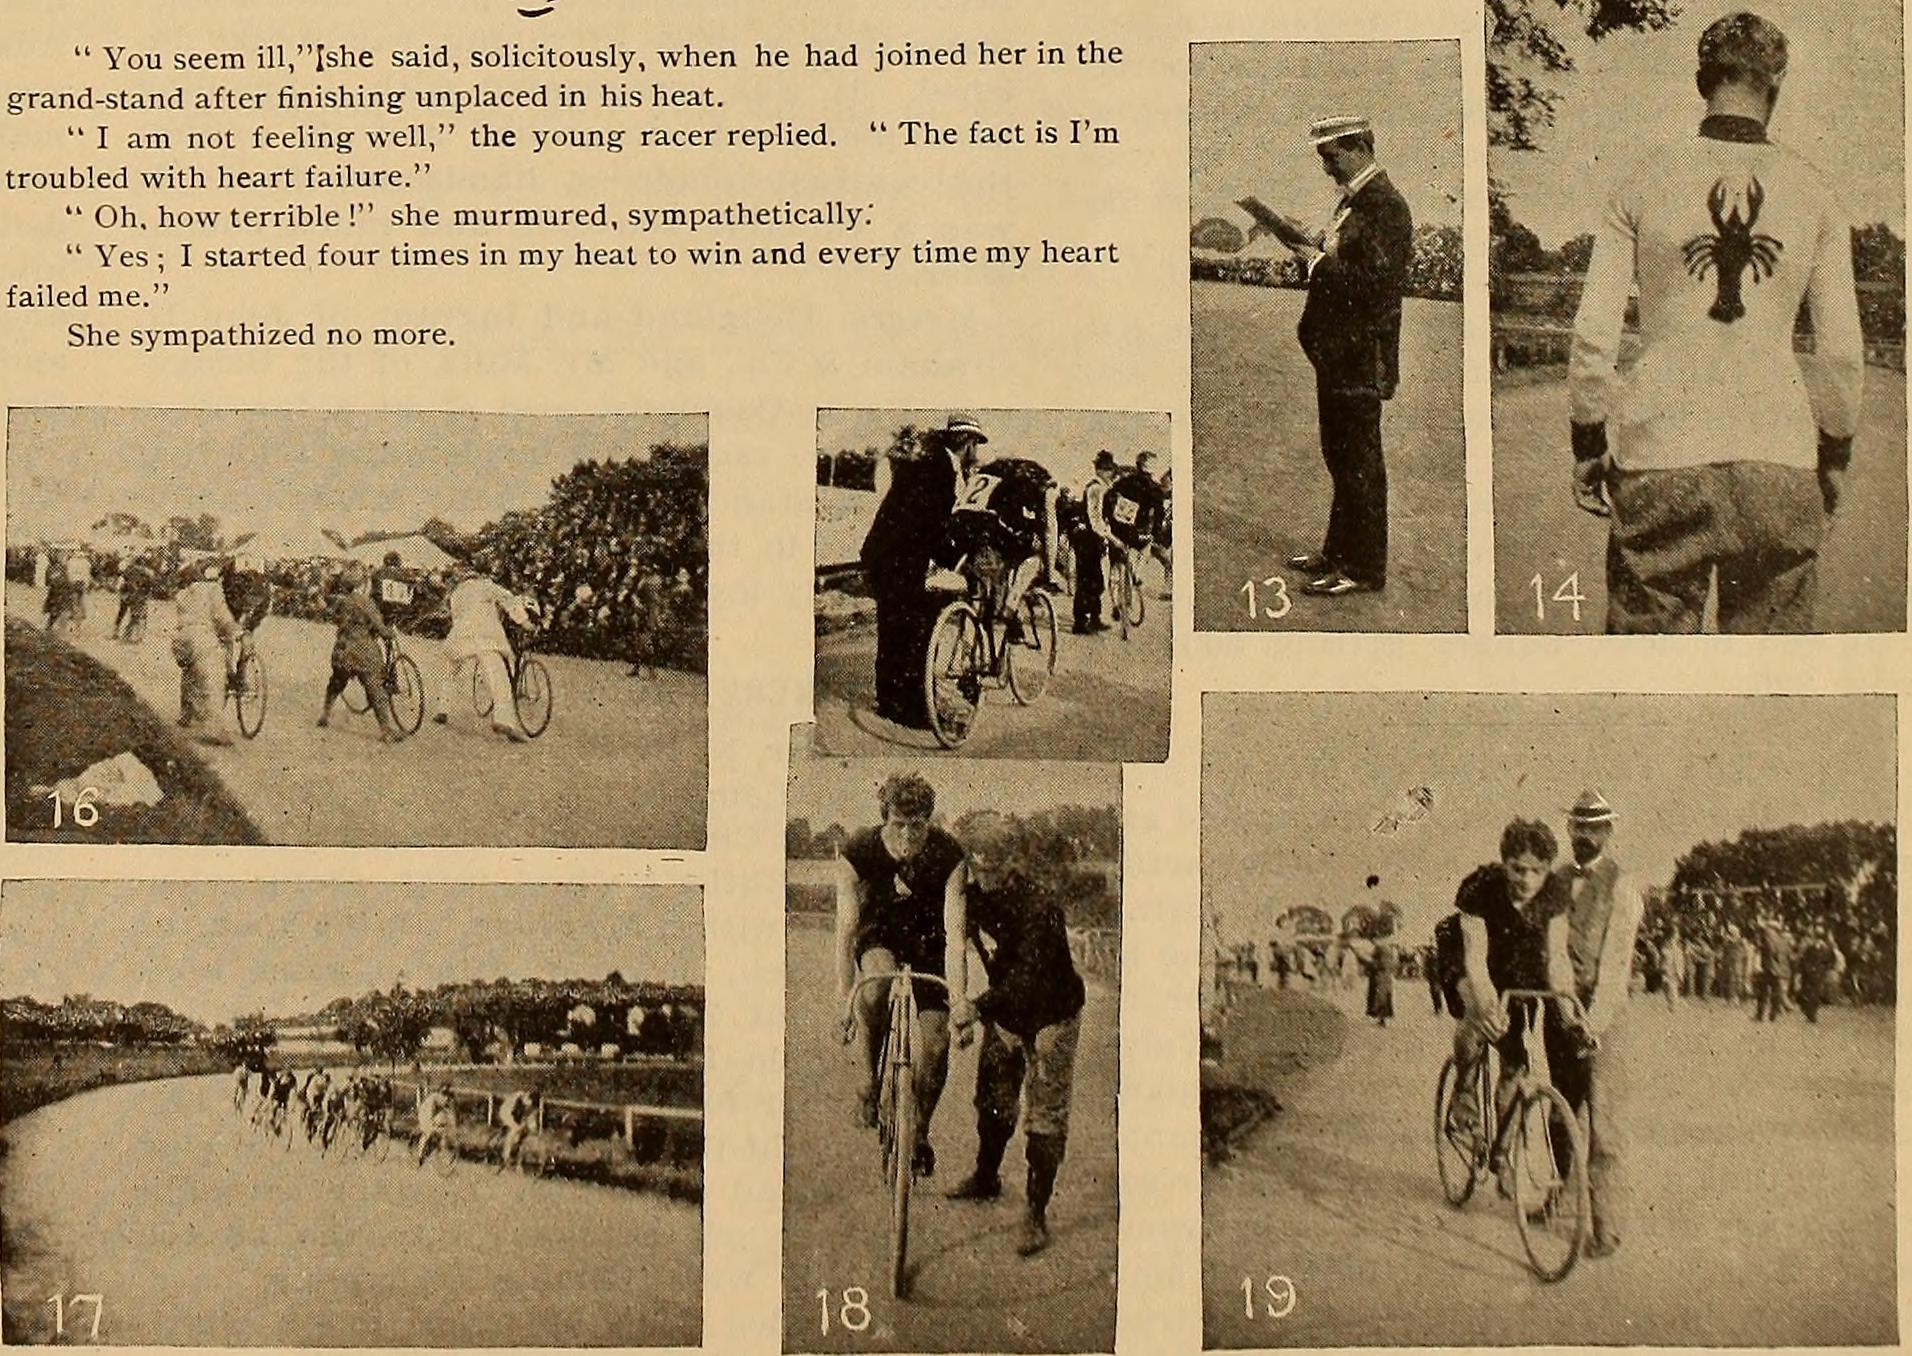 Wheel and cycling trade review (1896) (14796737883).jpg English: Identifier: wheelcy18211896121897newy (find matches) Title: The Wheel and cycling trade review